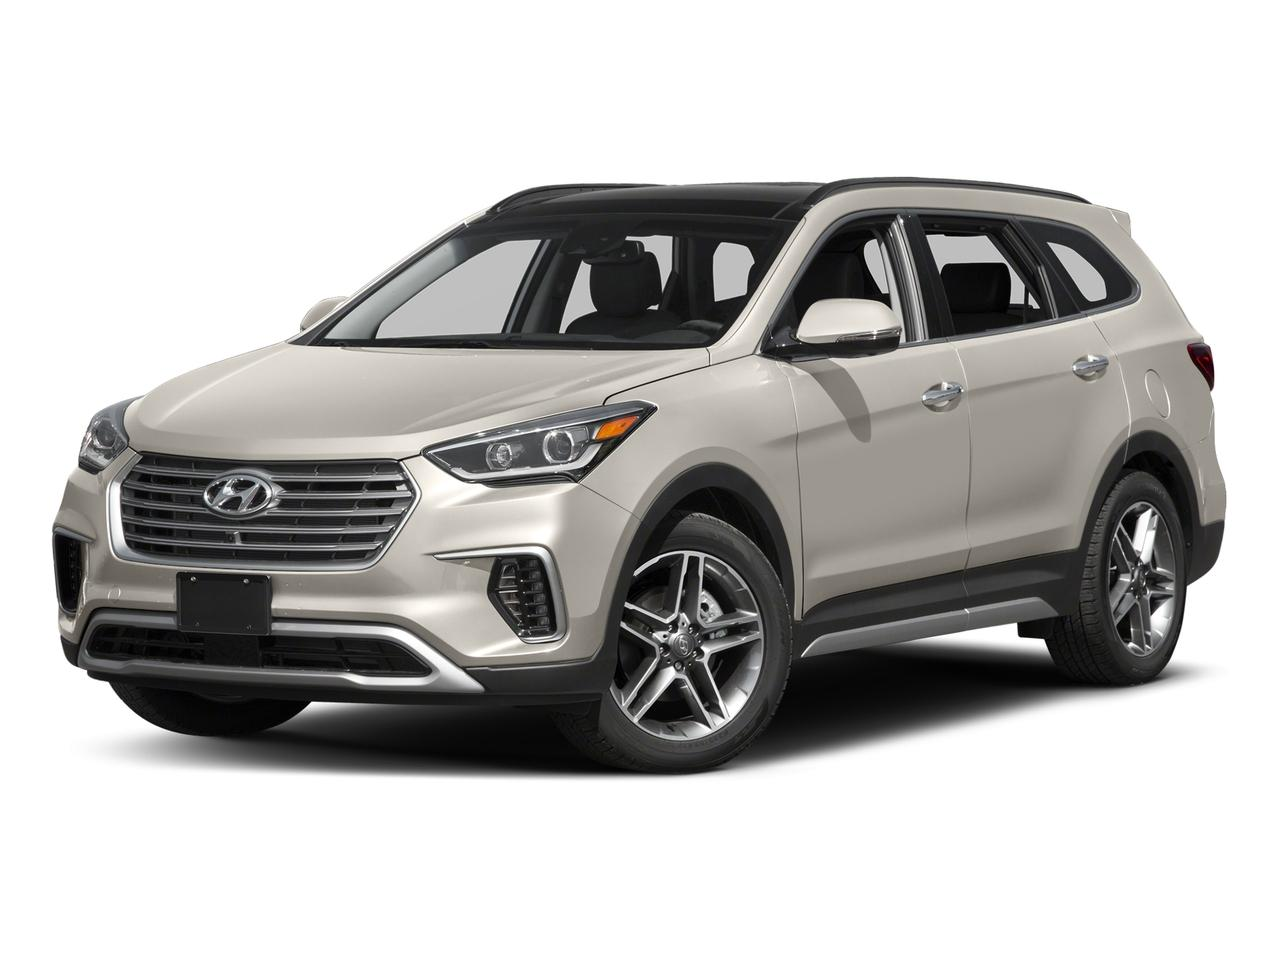 2017 Hyundai Santa Fe Vehicle Photo in Bowie, MD 20716